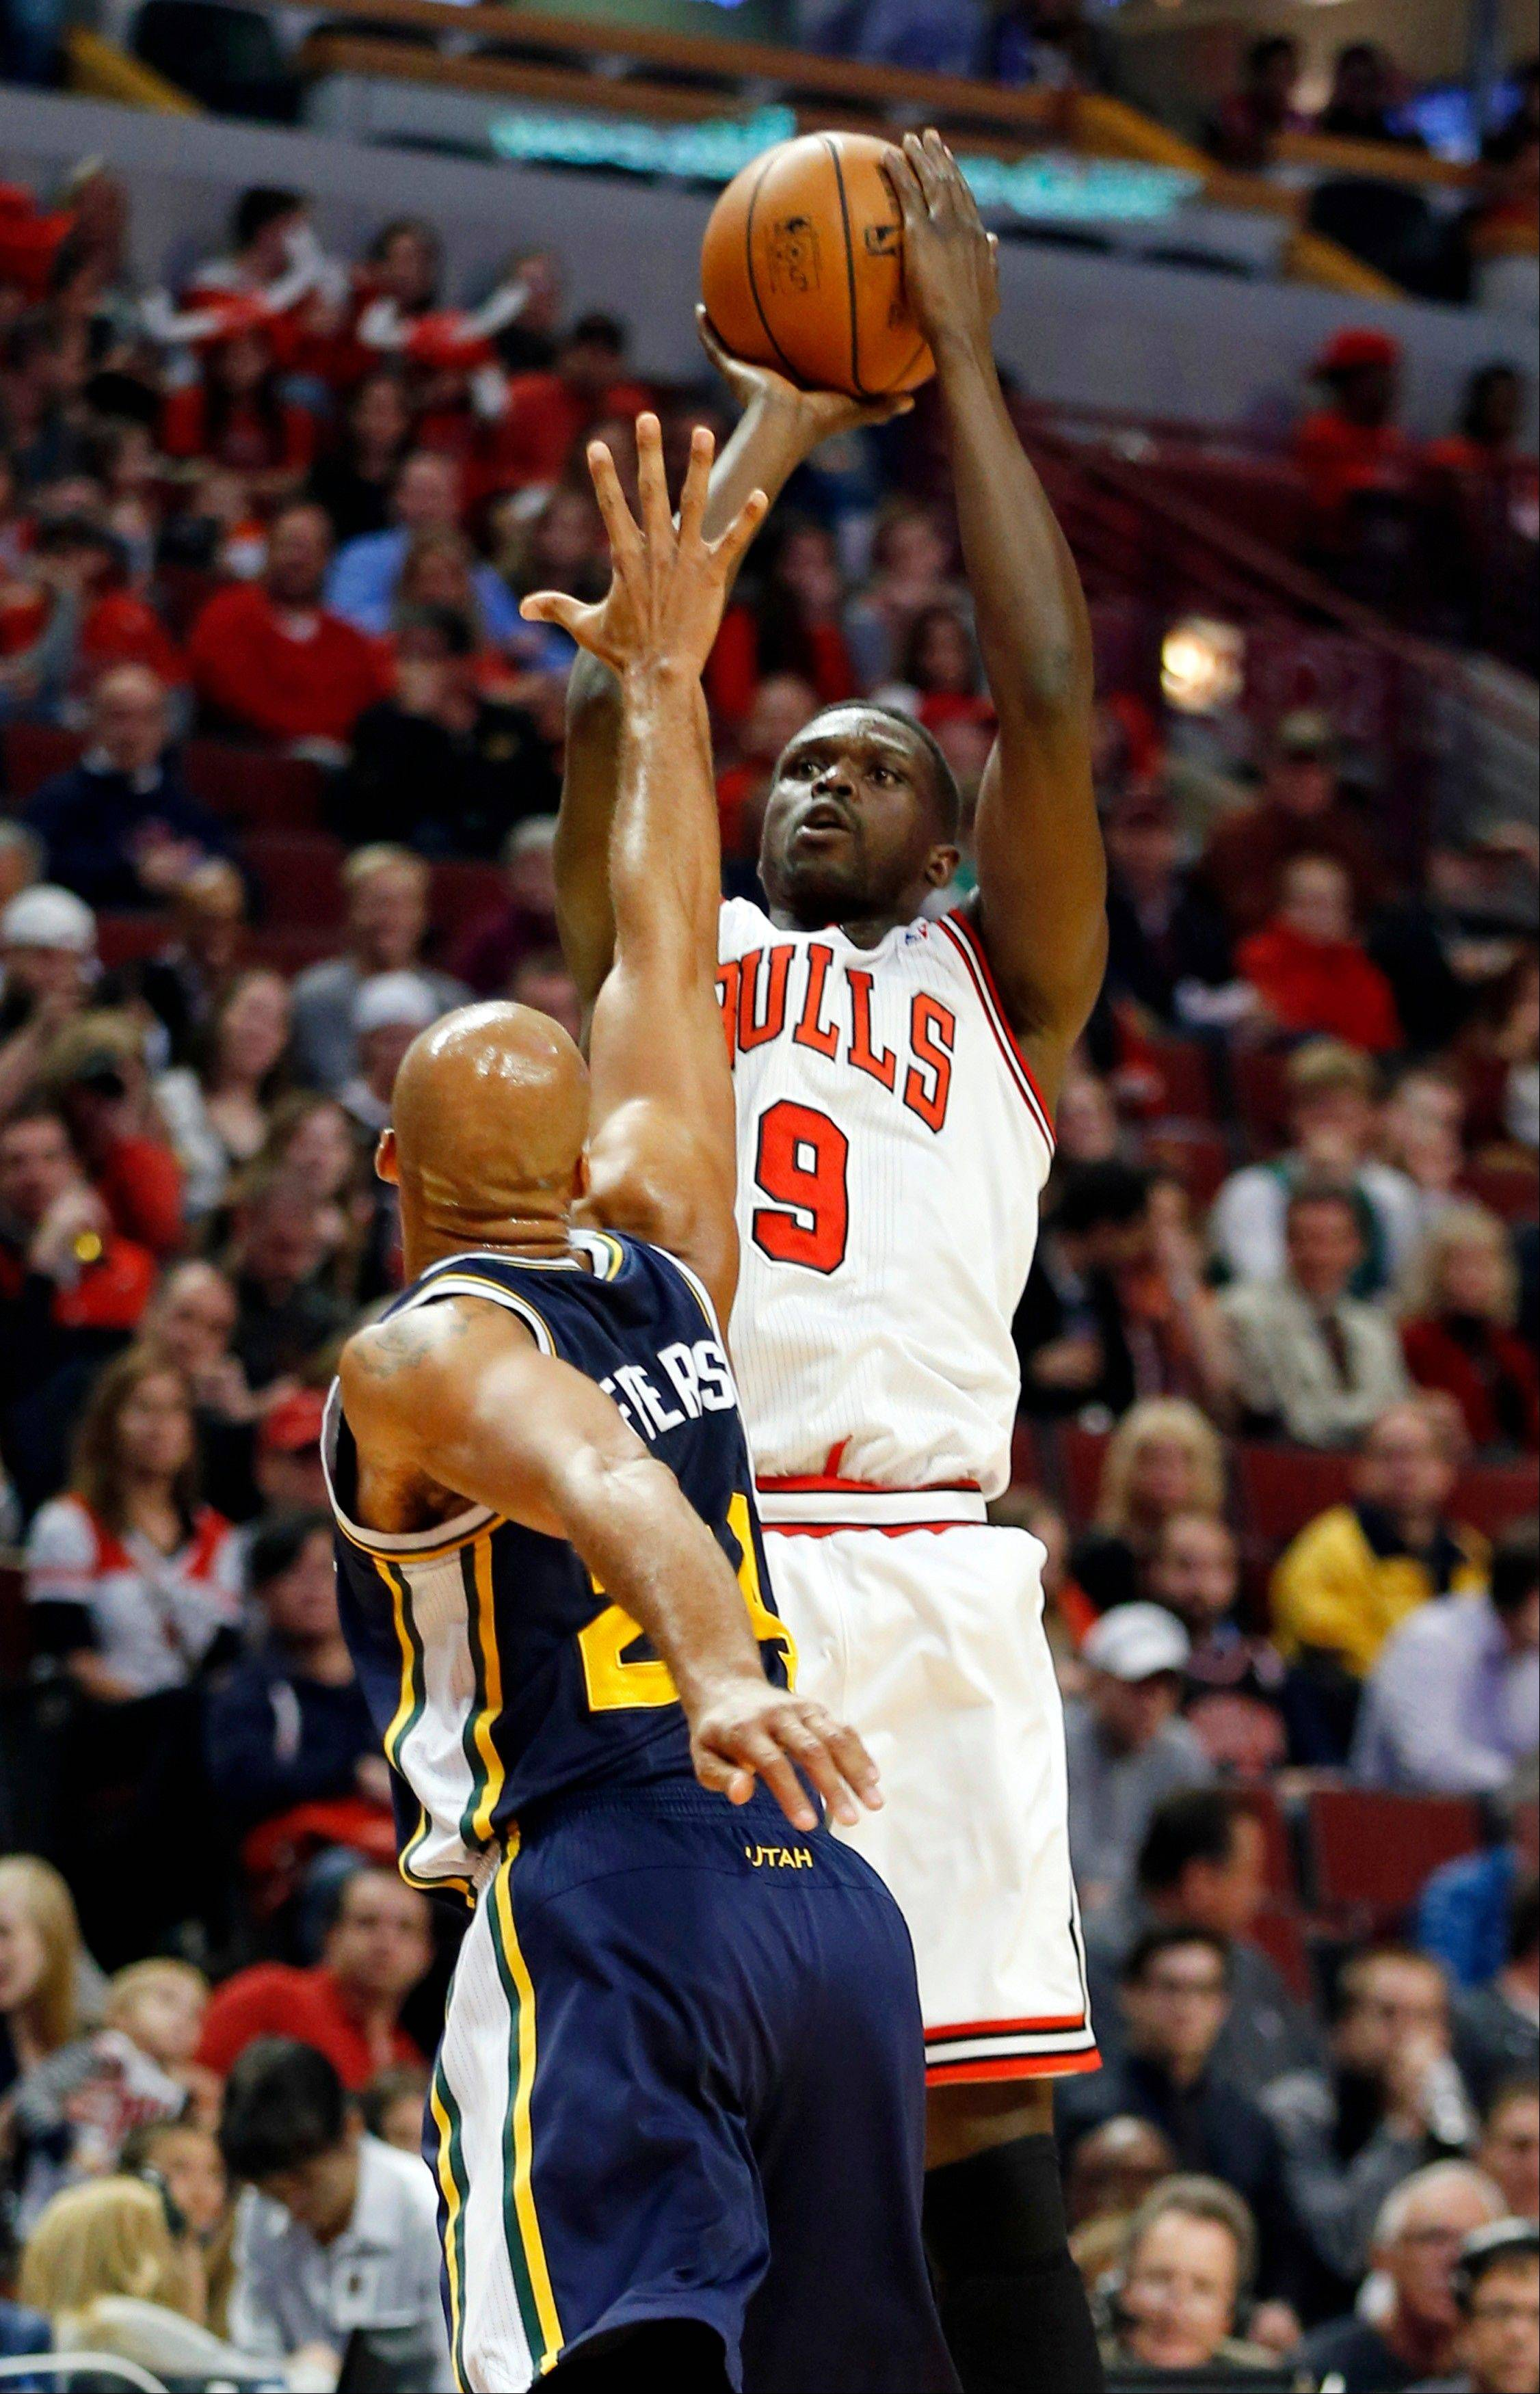 Associated Press The Bulls' Luol Deng came within an eyelash of his first career triple-double, finishing with 19 points, 11 rebounds and 9 assists to go with 5 steals against the Jazz at the United Center on Friday night.